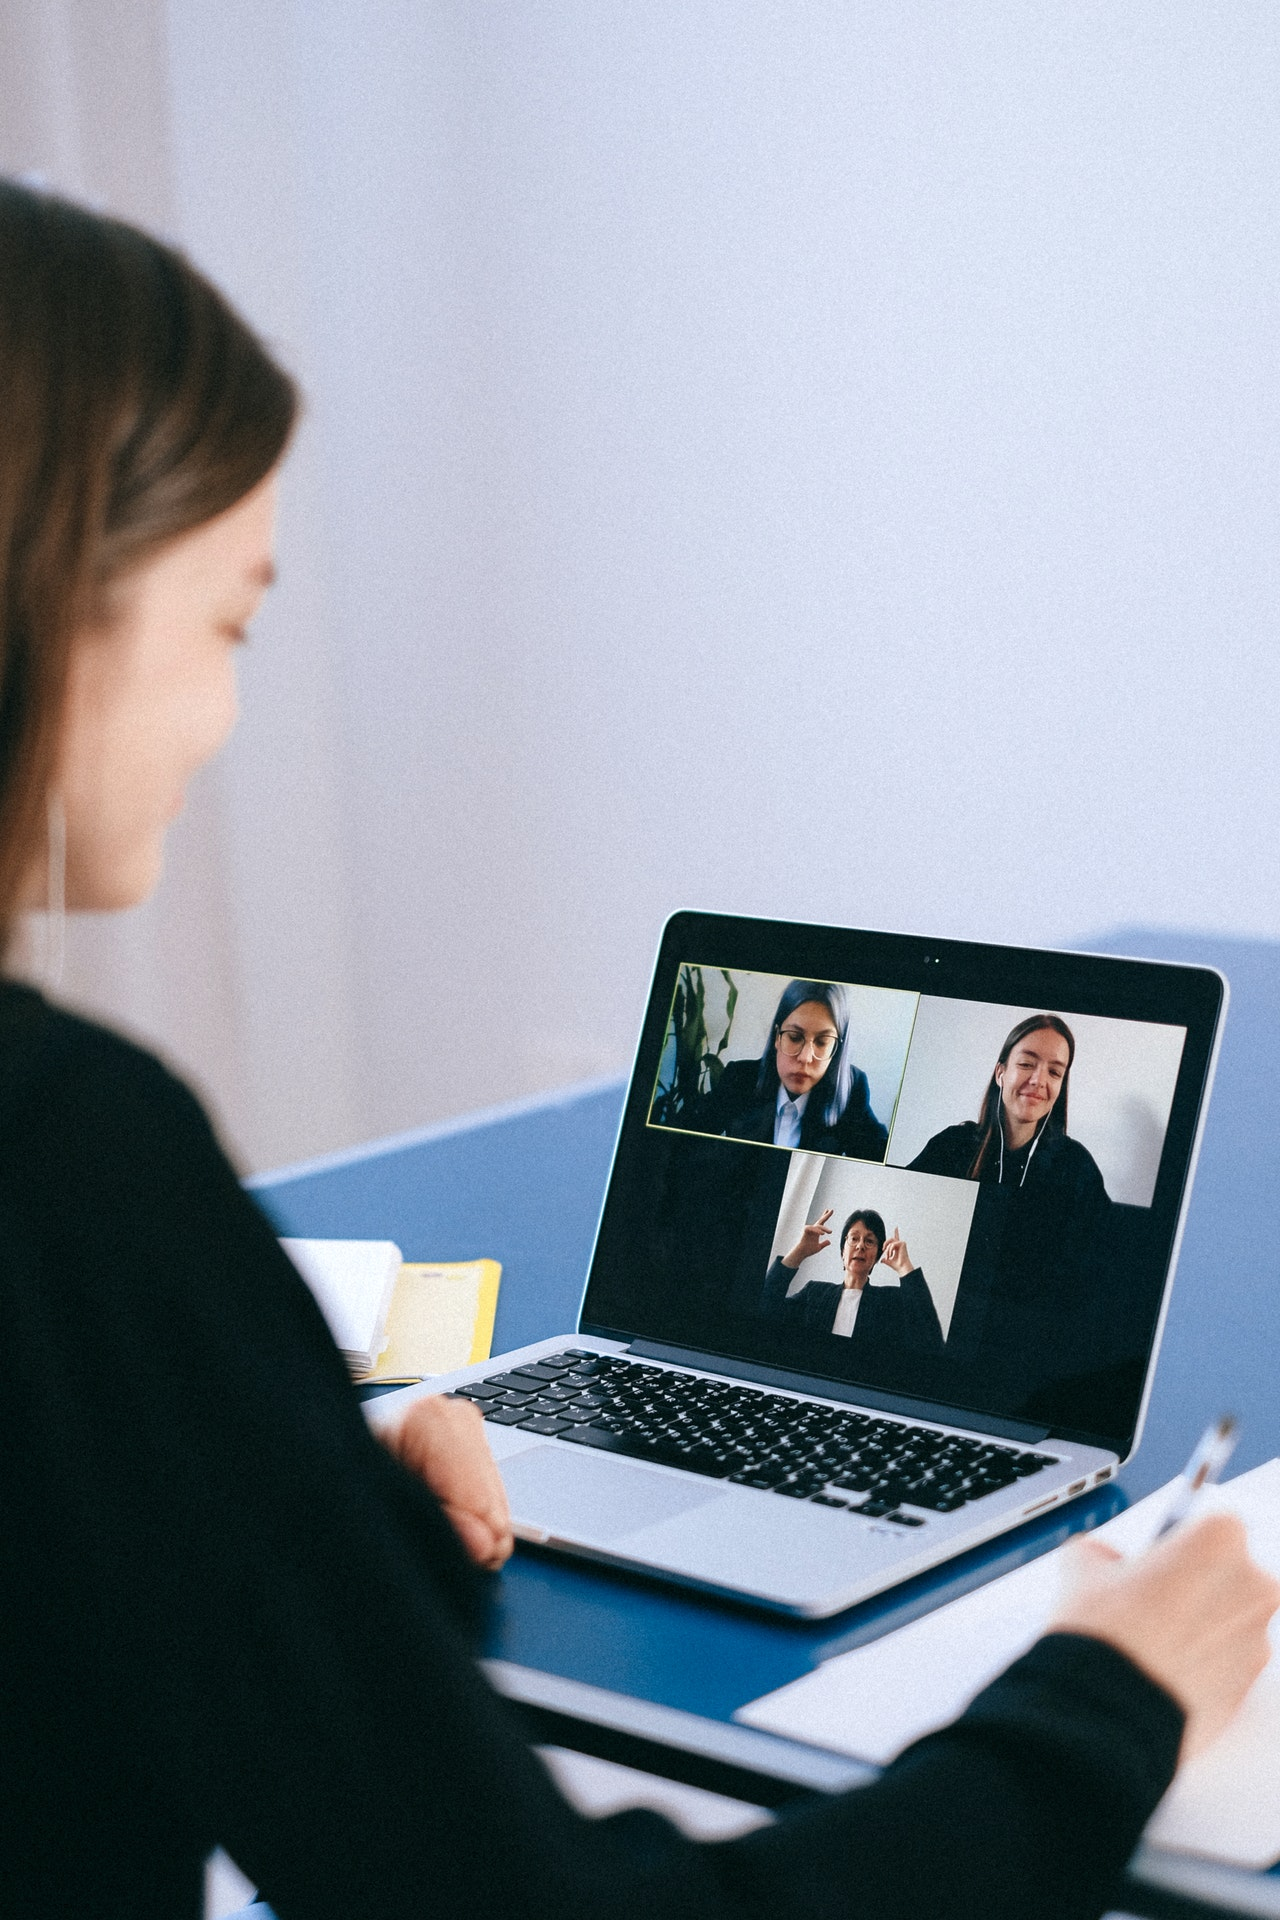 A woman communicates with other via video conferencing technology on a laptop.